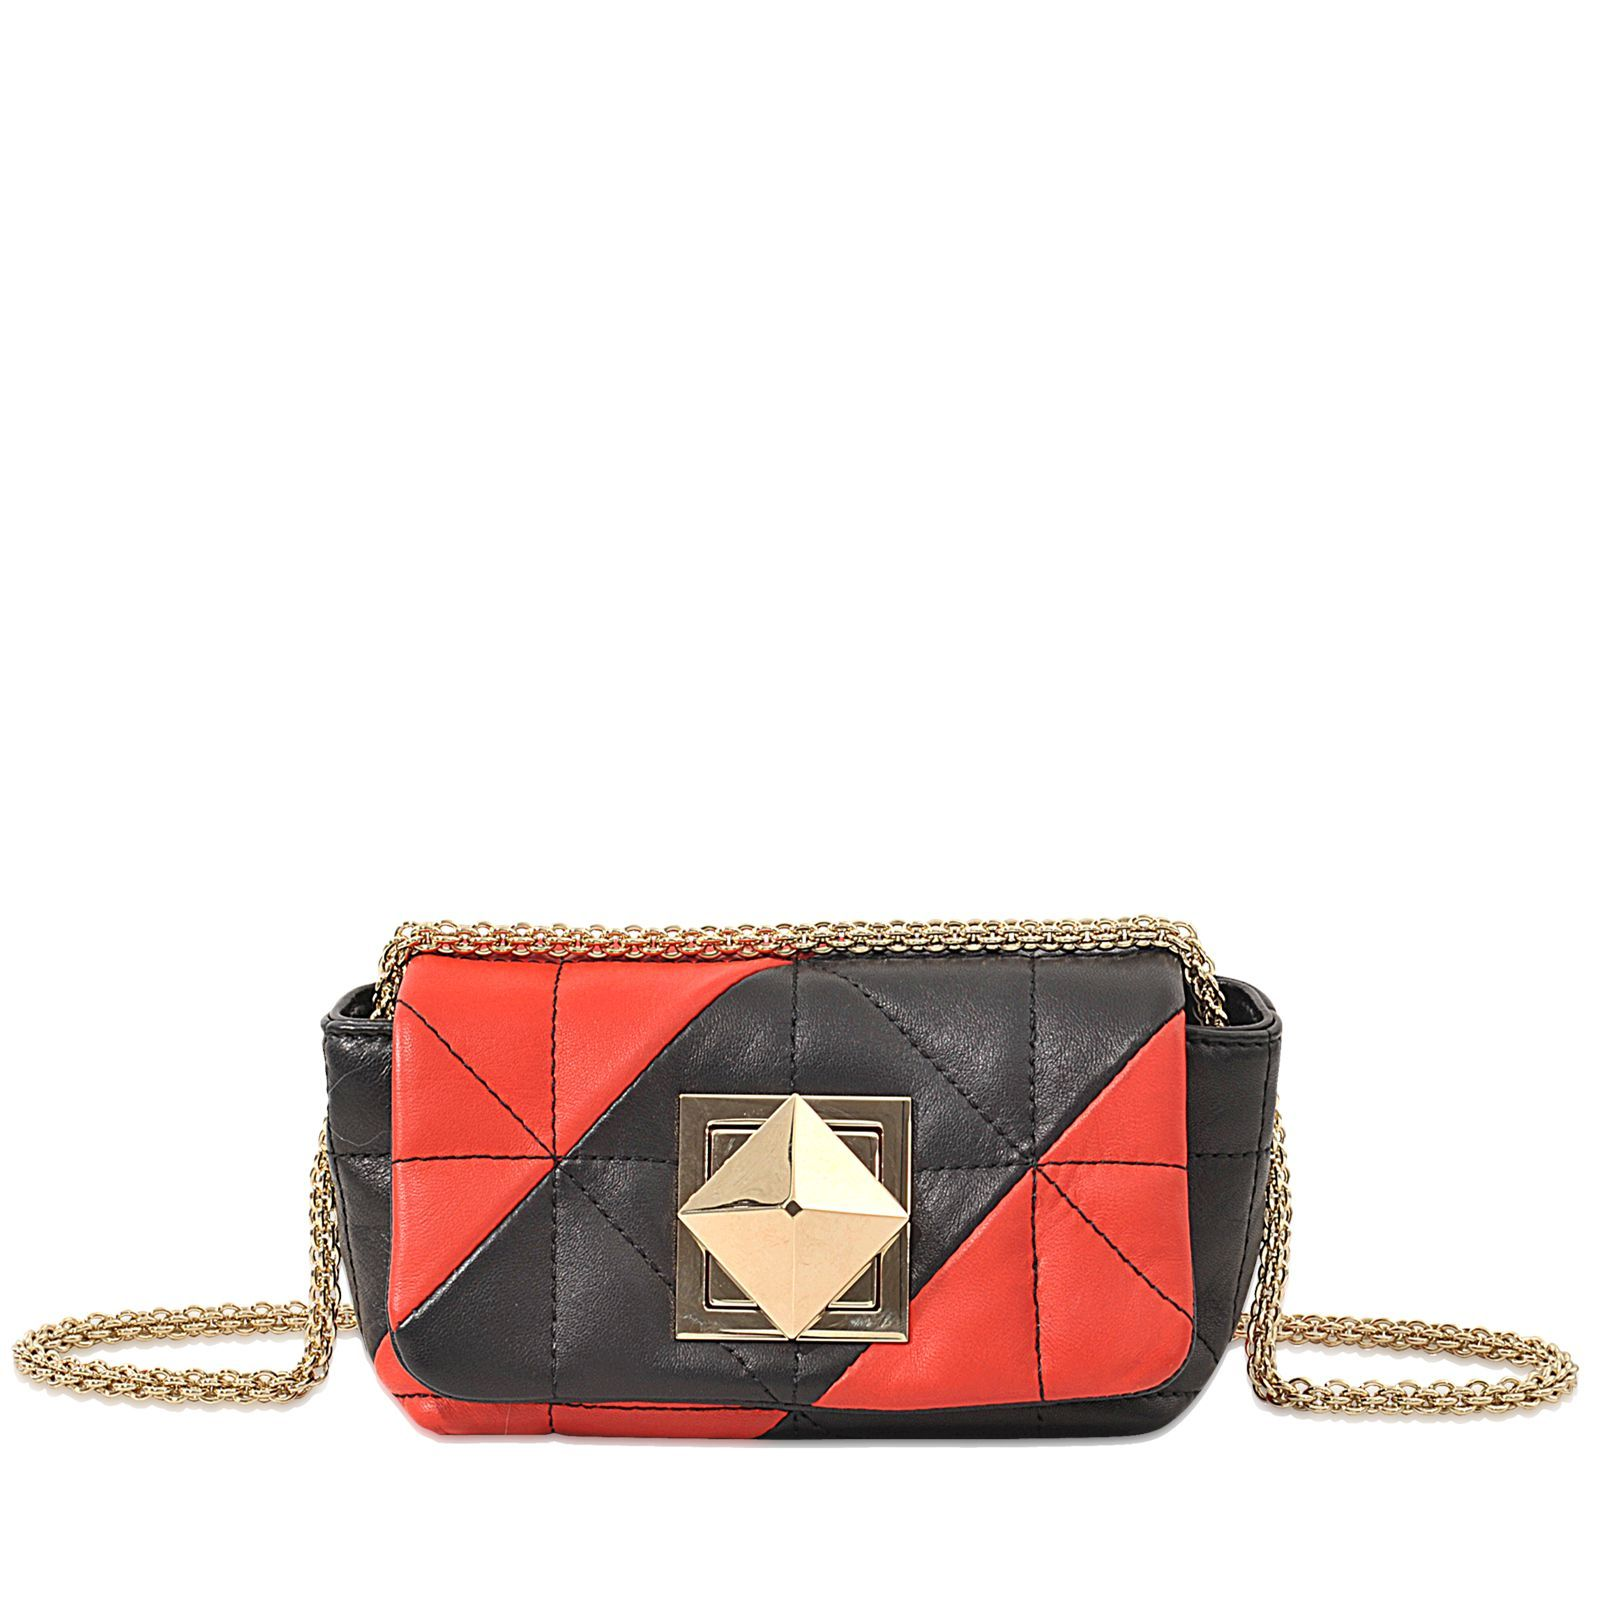 Sonia Rykiel Sac Le Clou Quilted NkmqLv